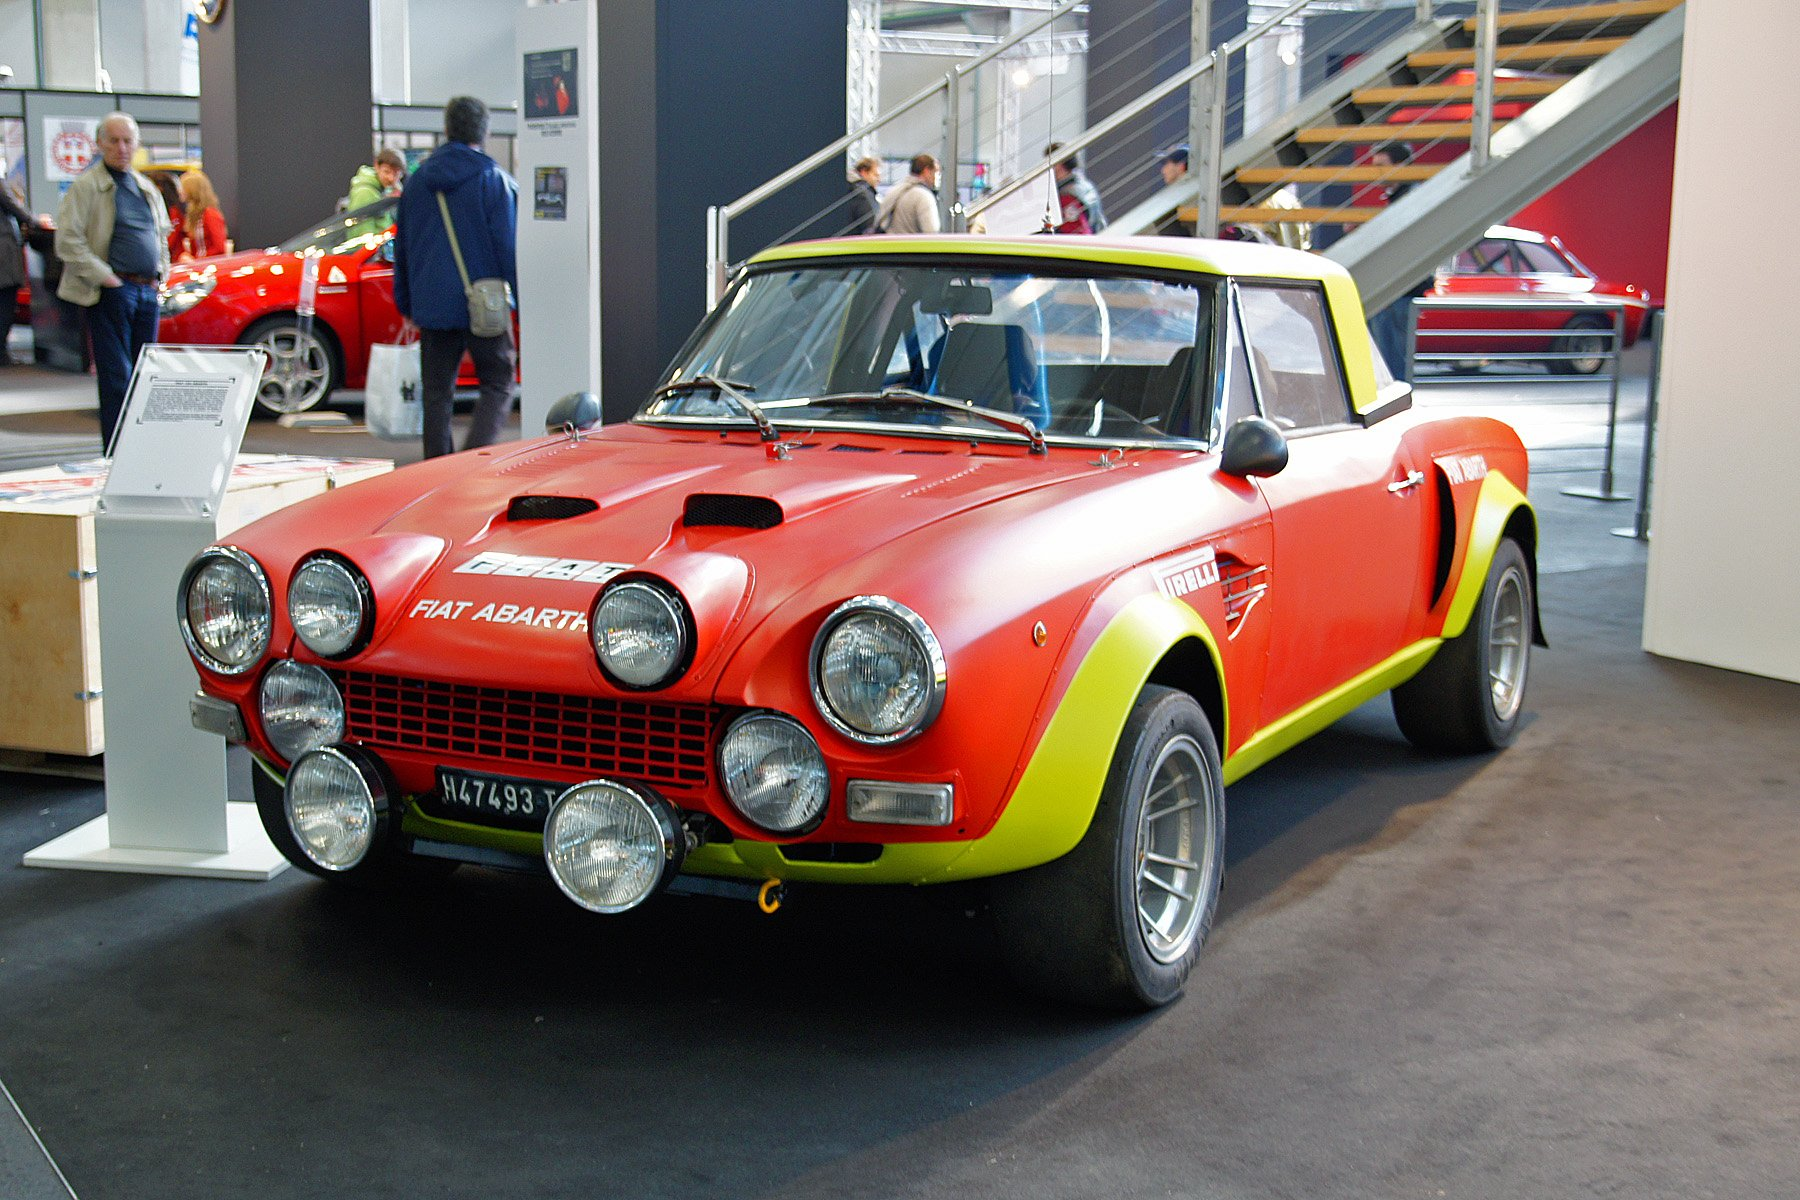 fiat 124 abarth rally cars wallpaper 1800x1200 605853 wallpaperup. Black Bedroom Furniture Sets. Home Design Ideas